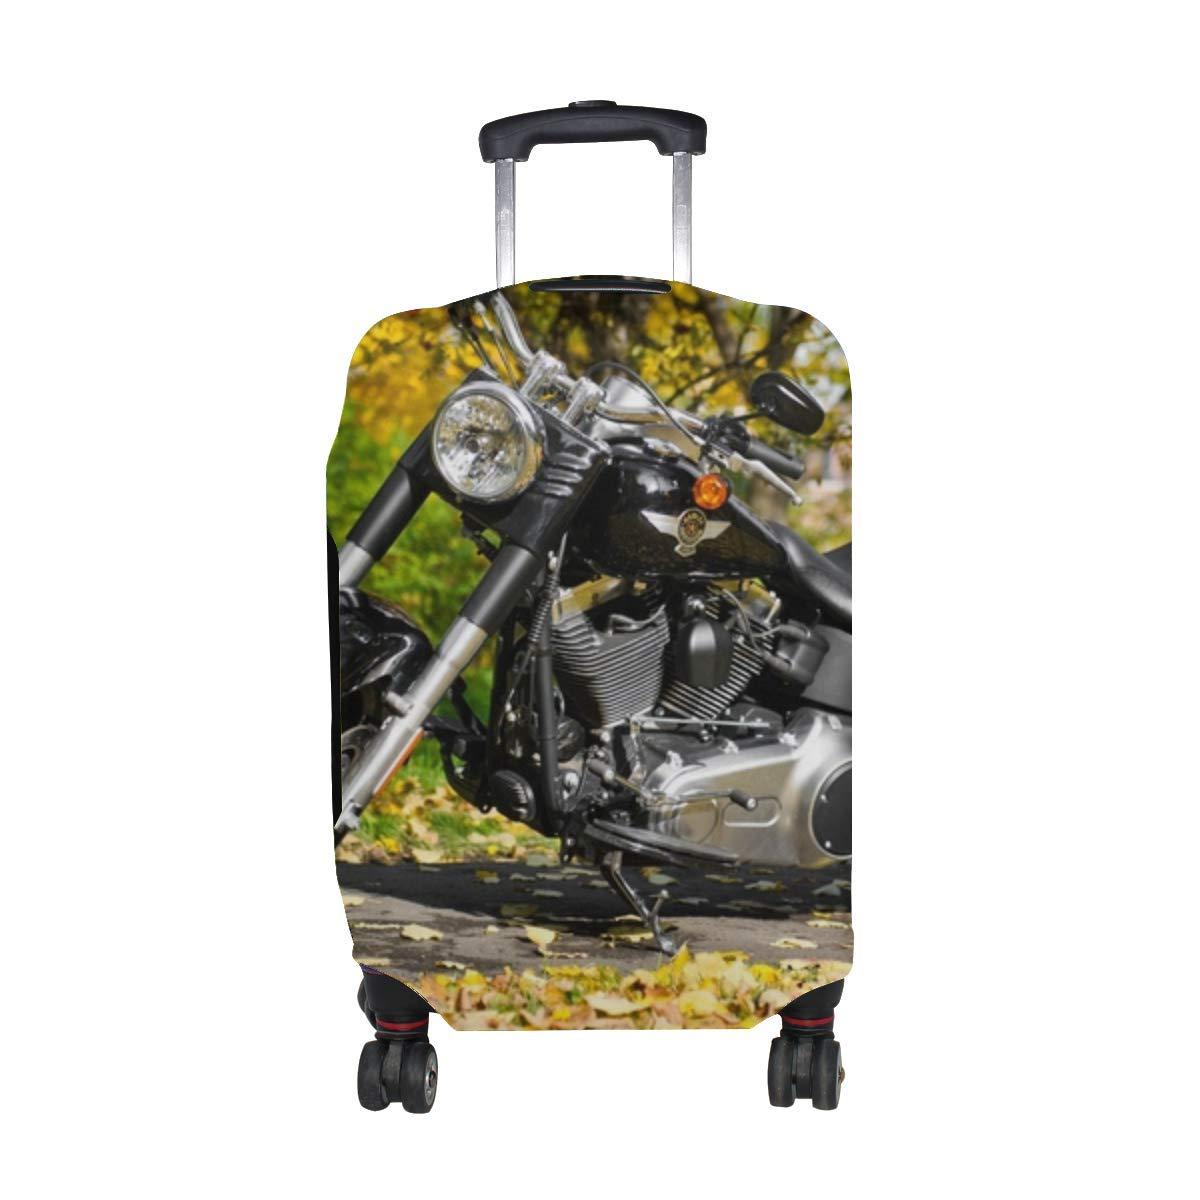 Harley Davidson Motorcycle Foliage Autumn Pattern Print Travel Luggage Protector Baggage Suitcase Cover Fits 18-21 Inch Luggage